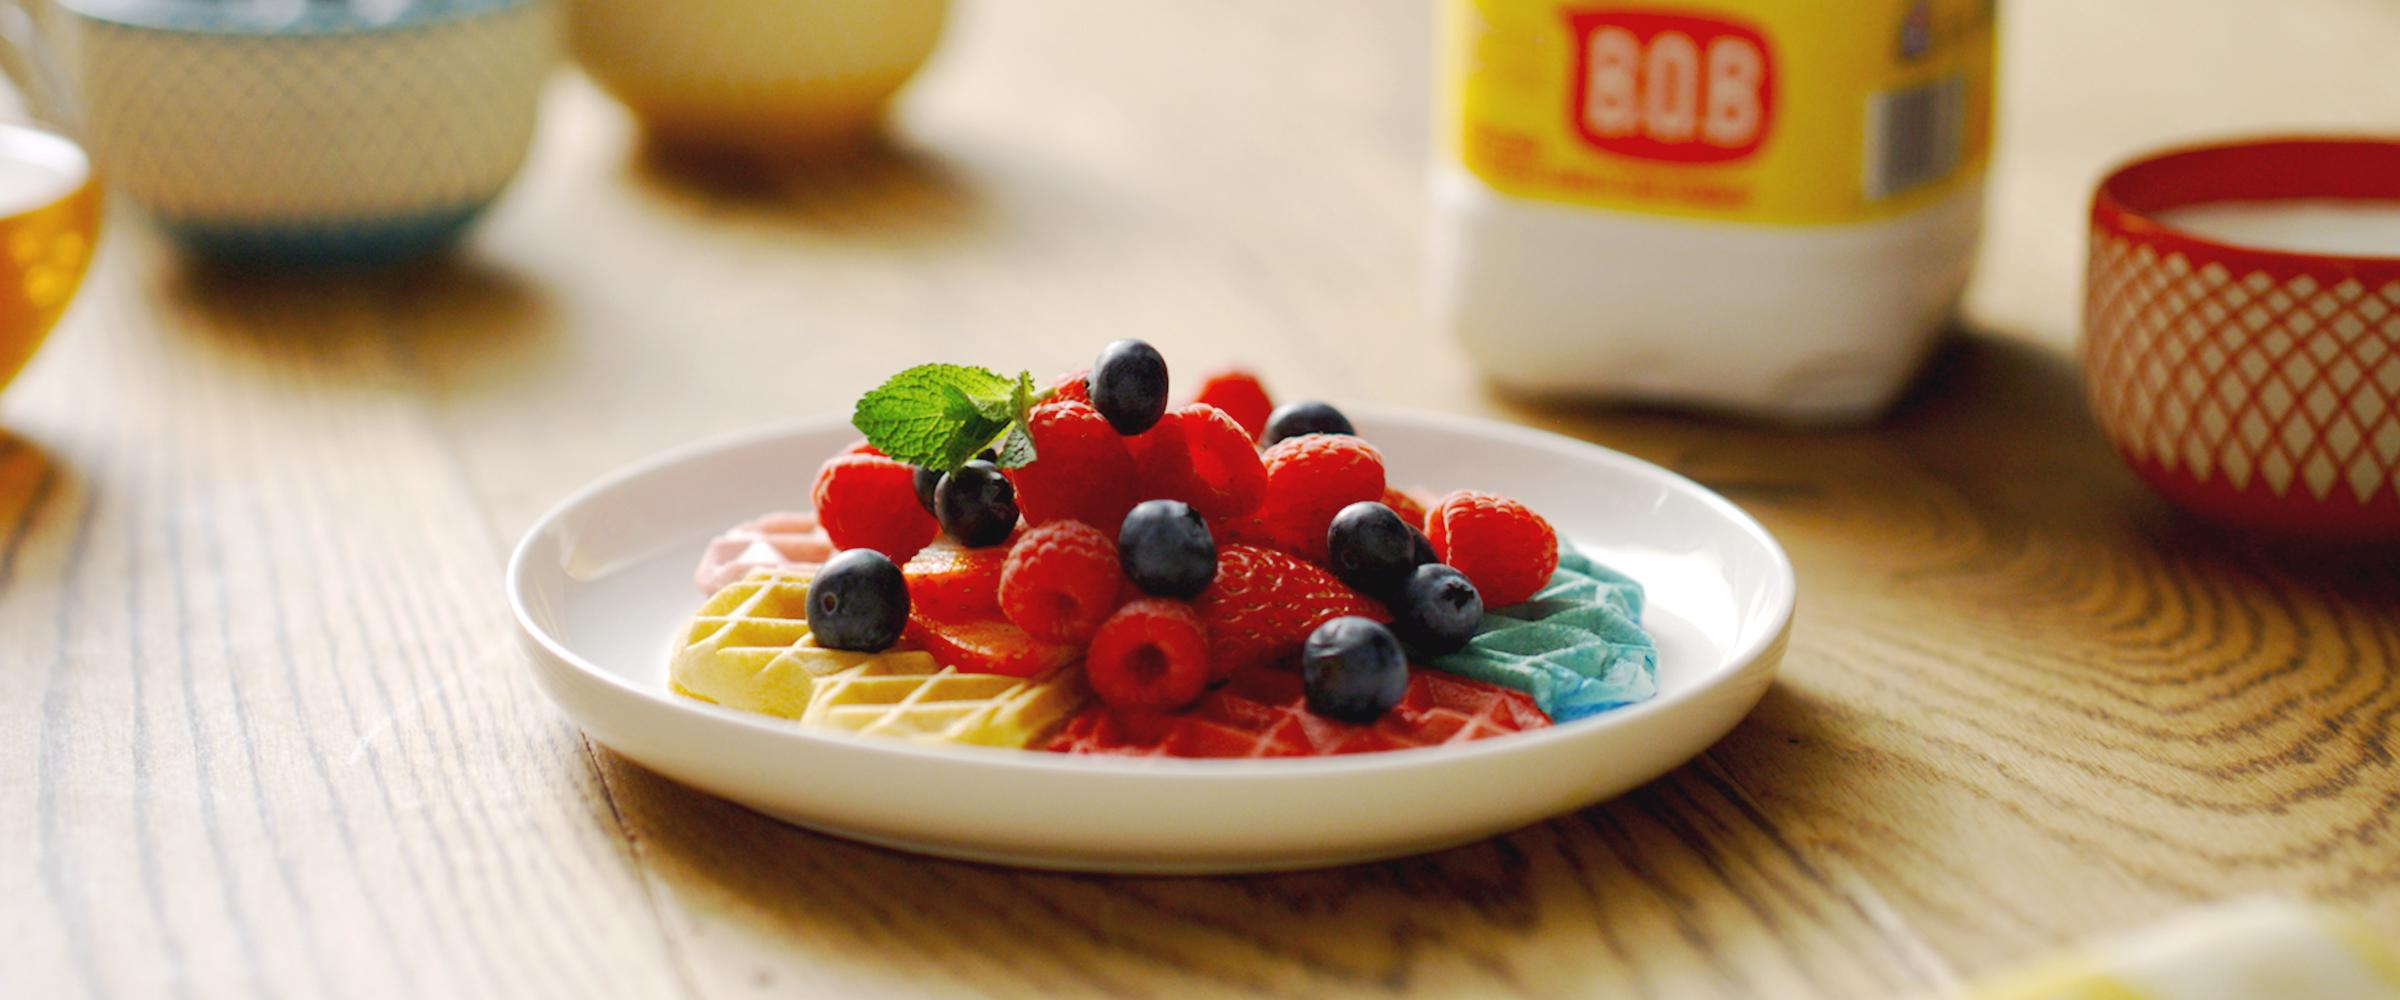 Rainbow waffles topped with berries and mint